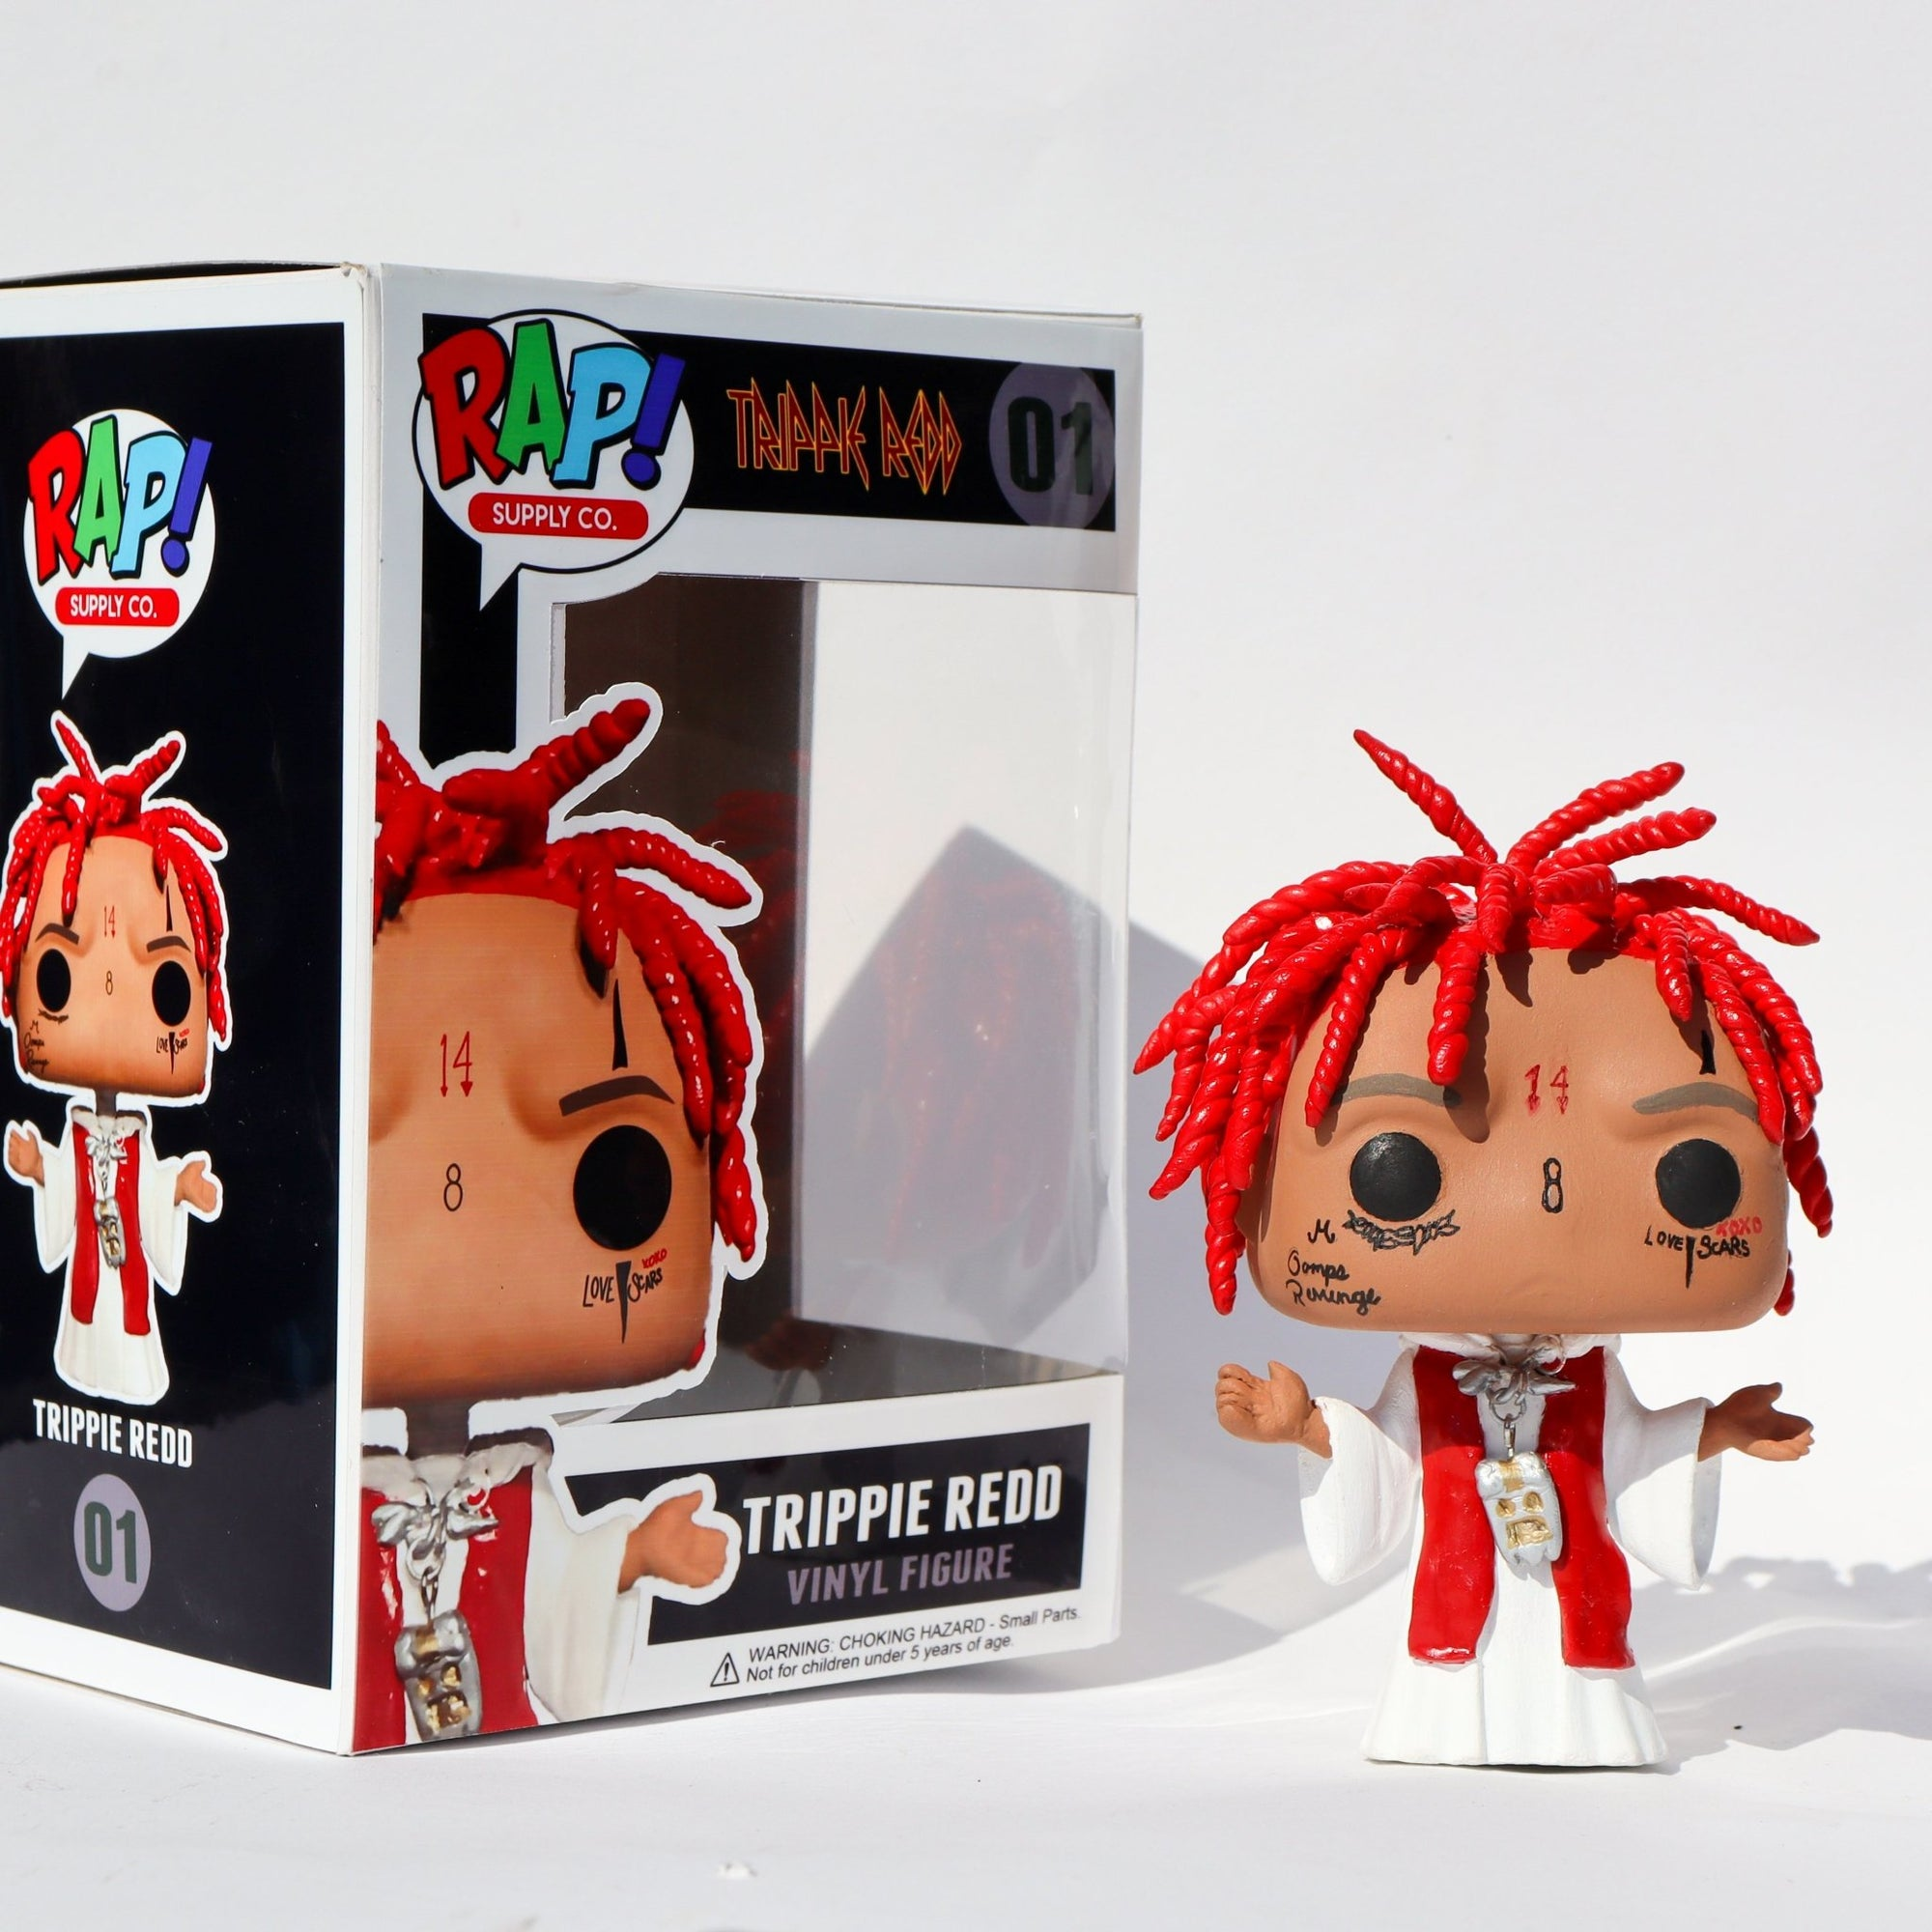 Trippie 01 (Topanga) - Custom Pop - Rap Supply Co.